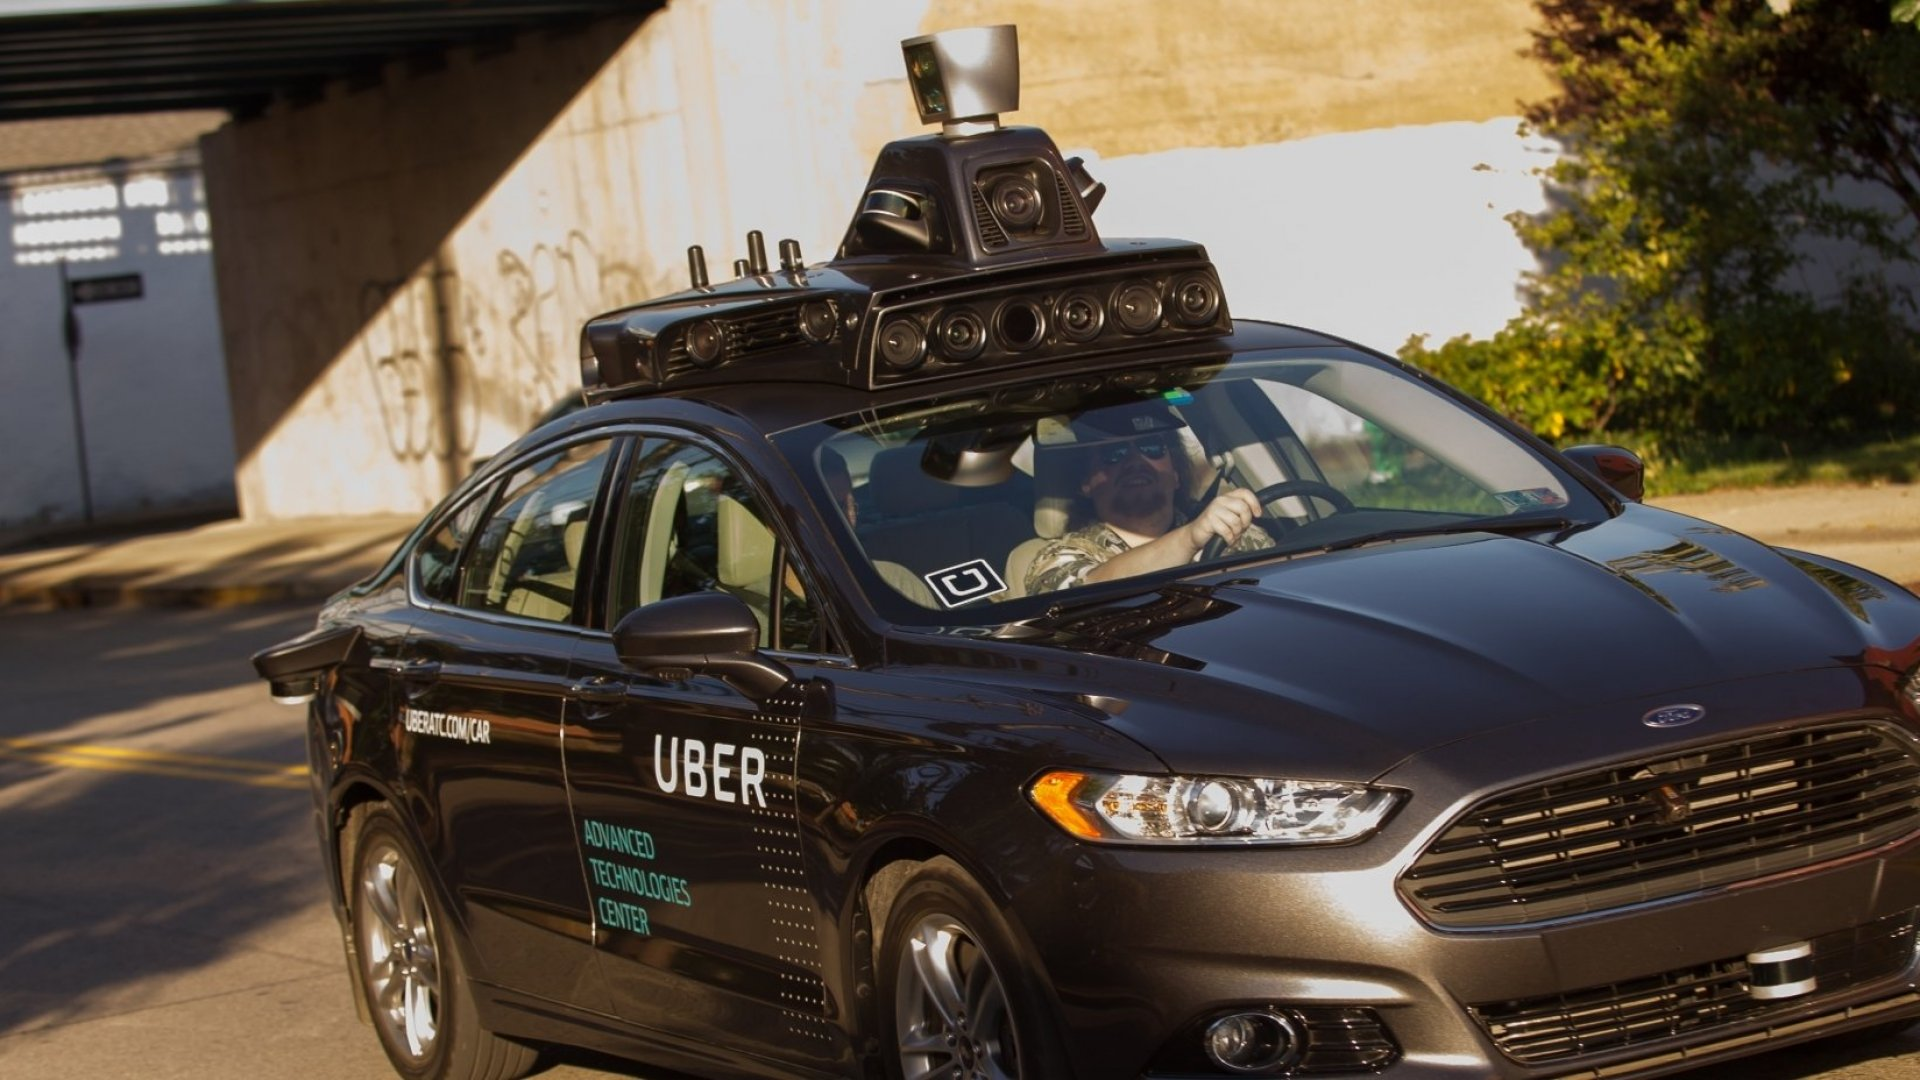 Just When You Thought Things Couldn't Get Worse for Uber, a Self-Driving Car Crashes in Arizona